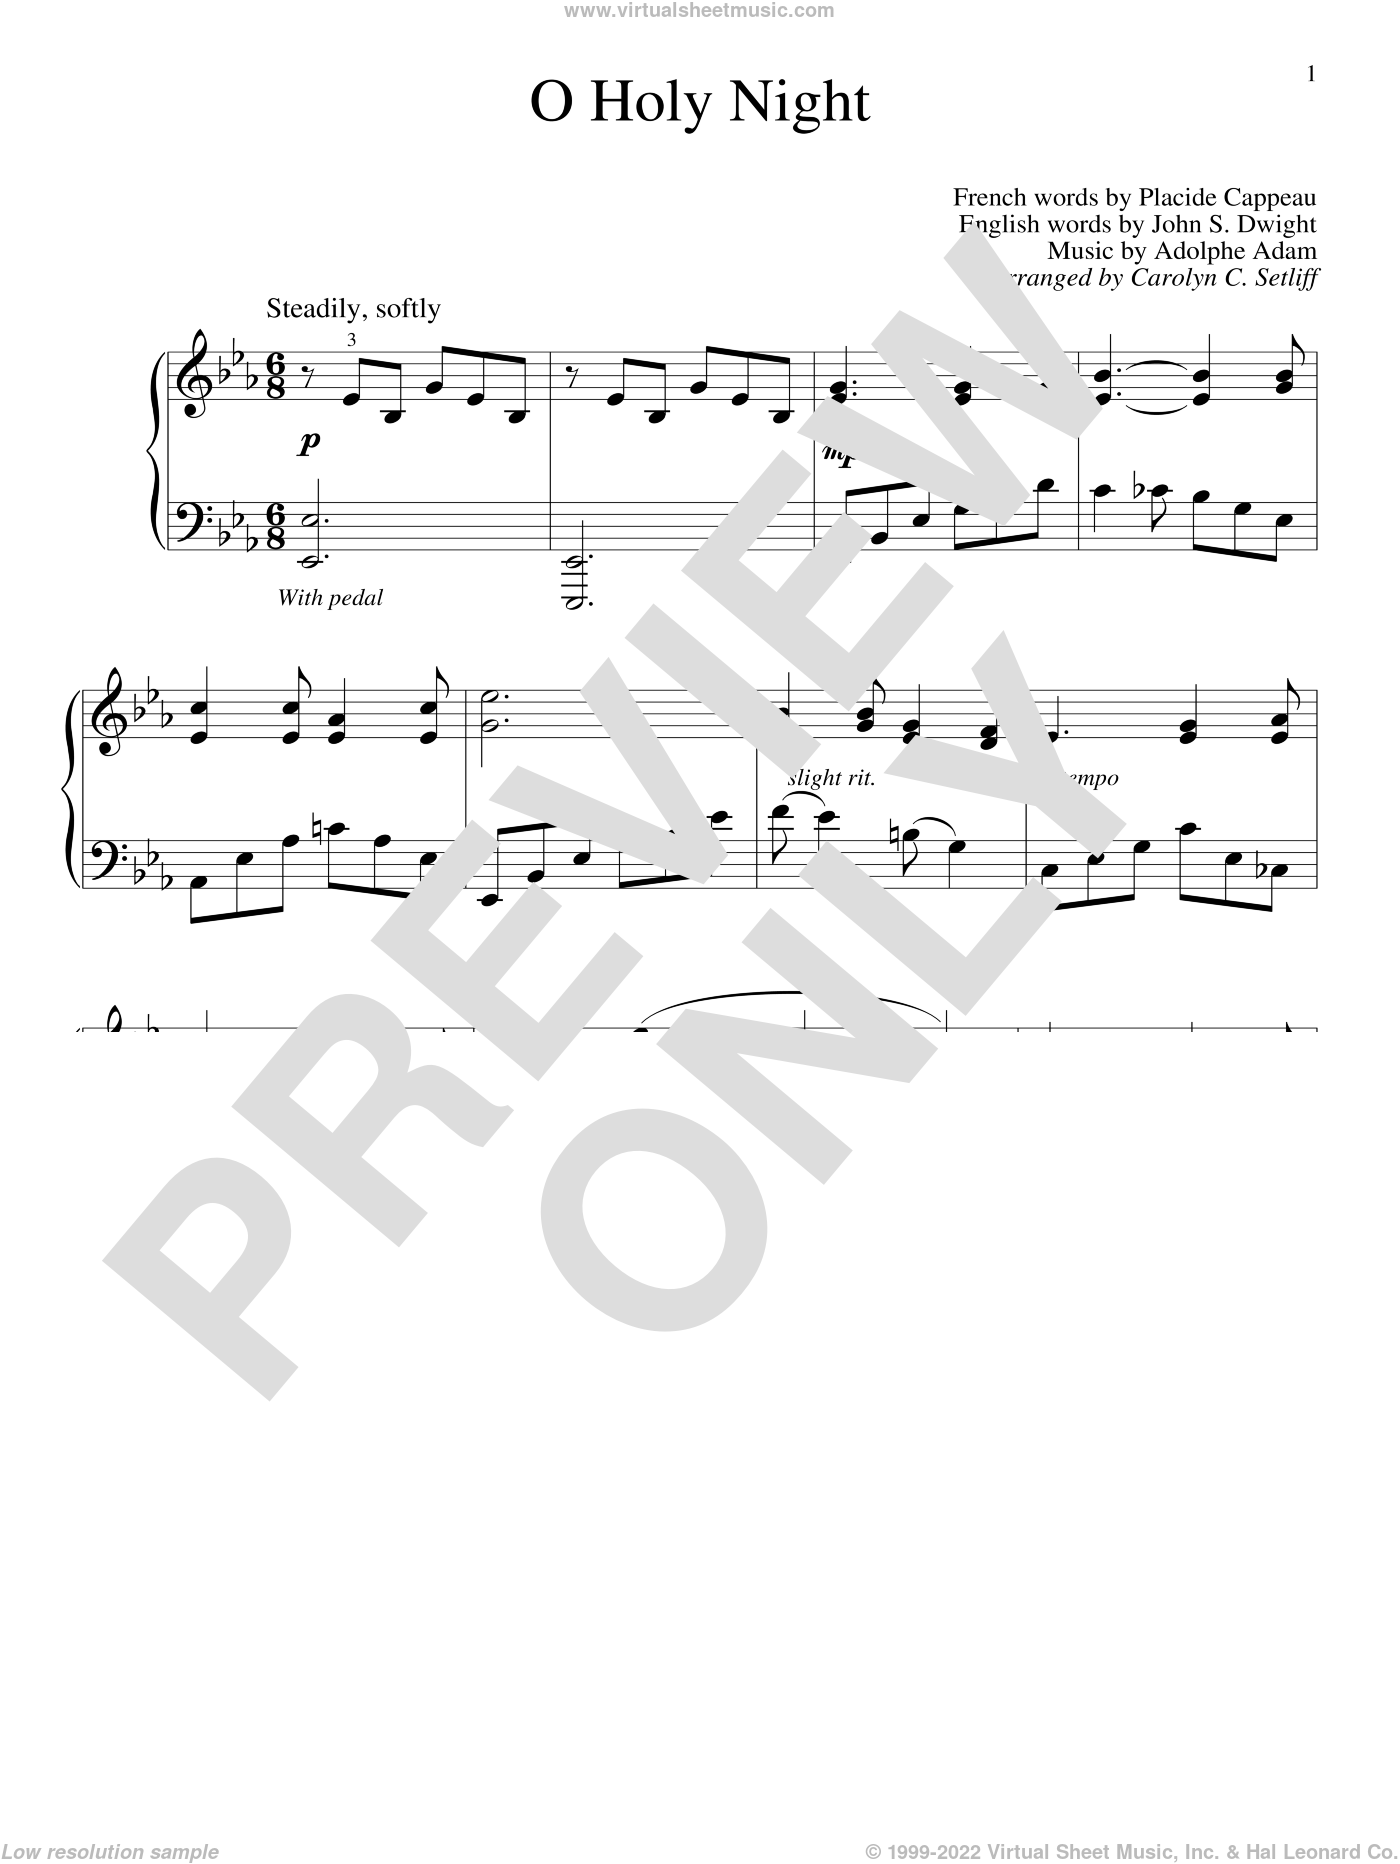 O Holy Night sheet music for piano solo (elementary) by Adolphe Adam, Carolyn C. Setliff, John S. Dwight and Placide Cappeau, beginner piano (elementary)